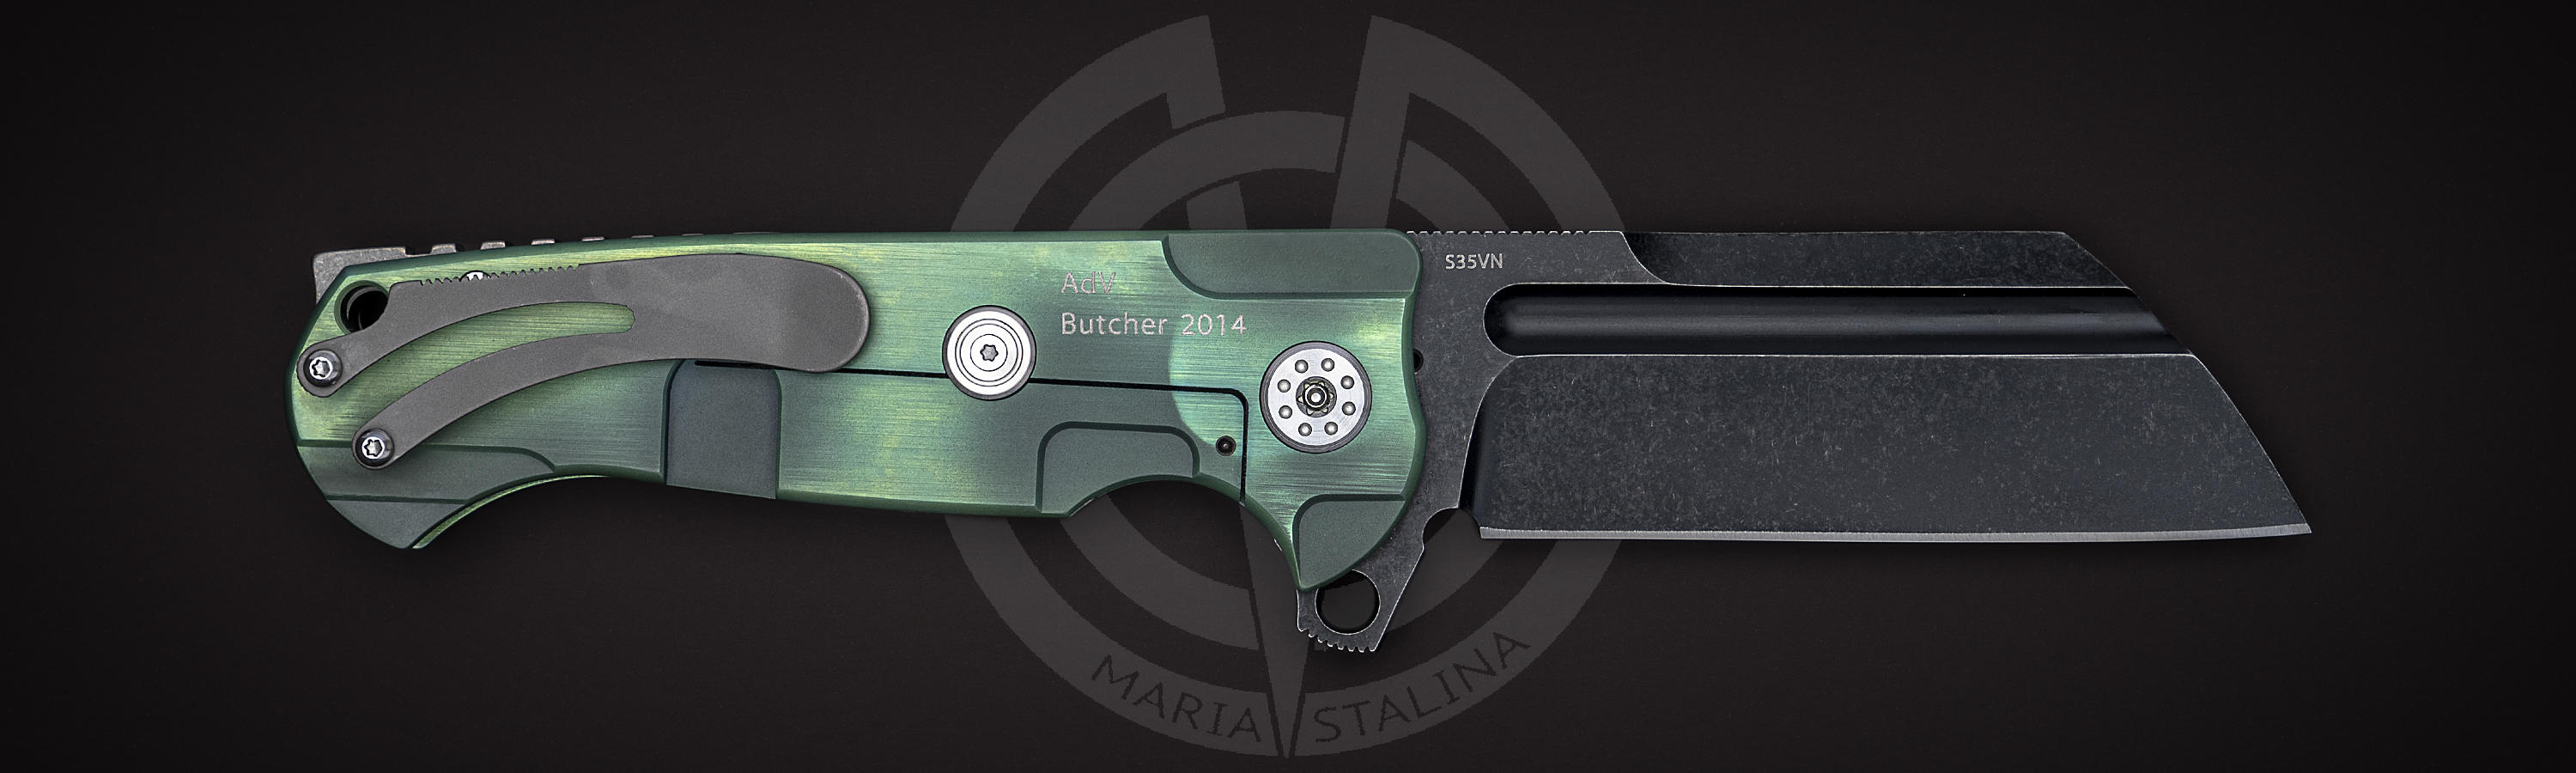 Black steel blade S35VN Butcher 2014 Green/Black